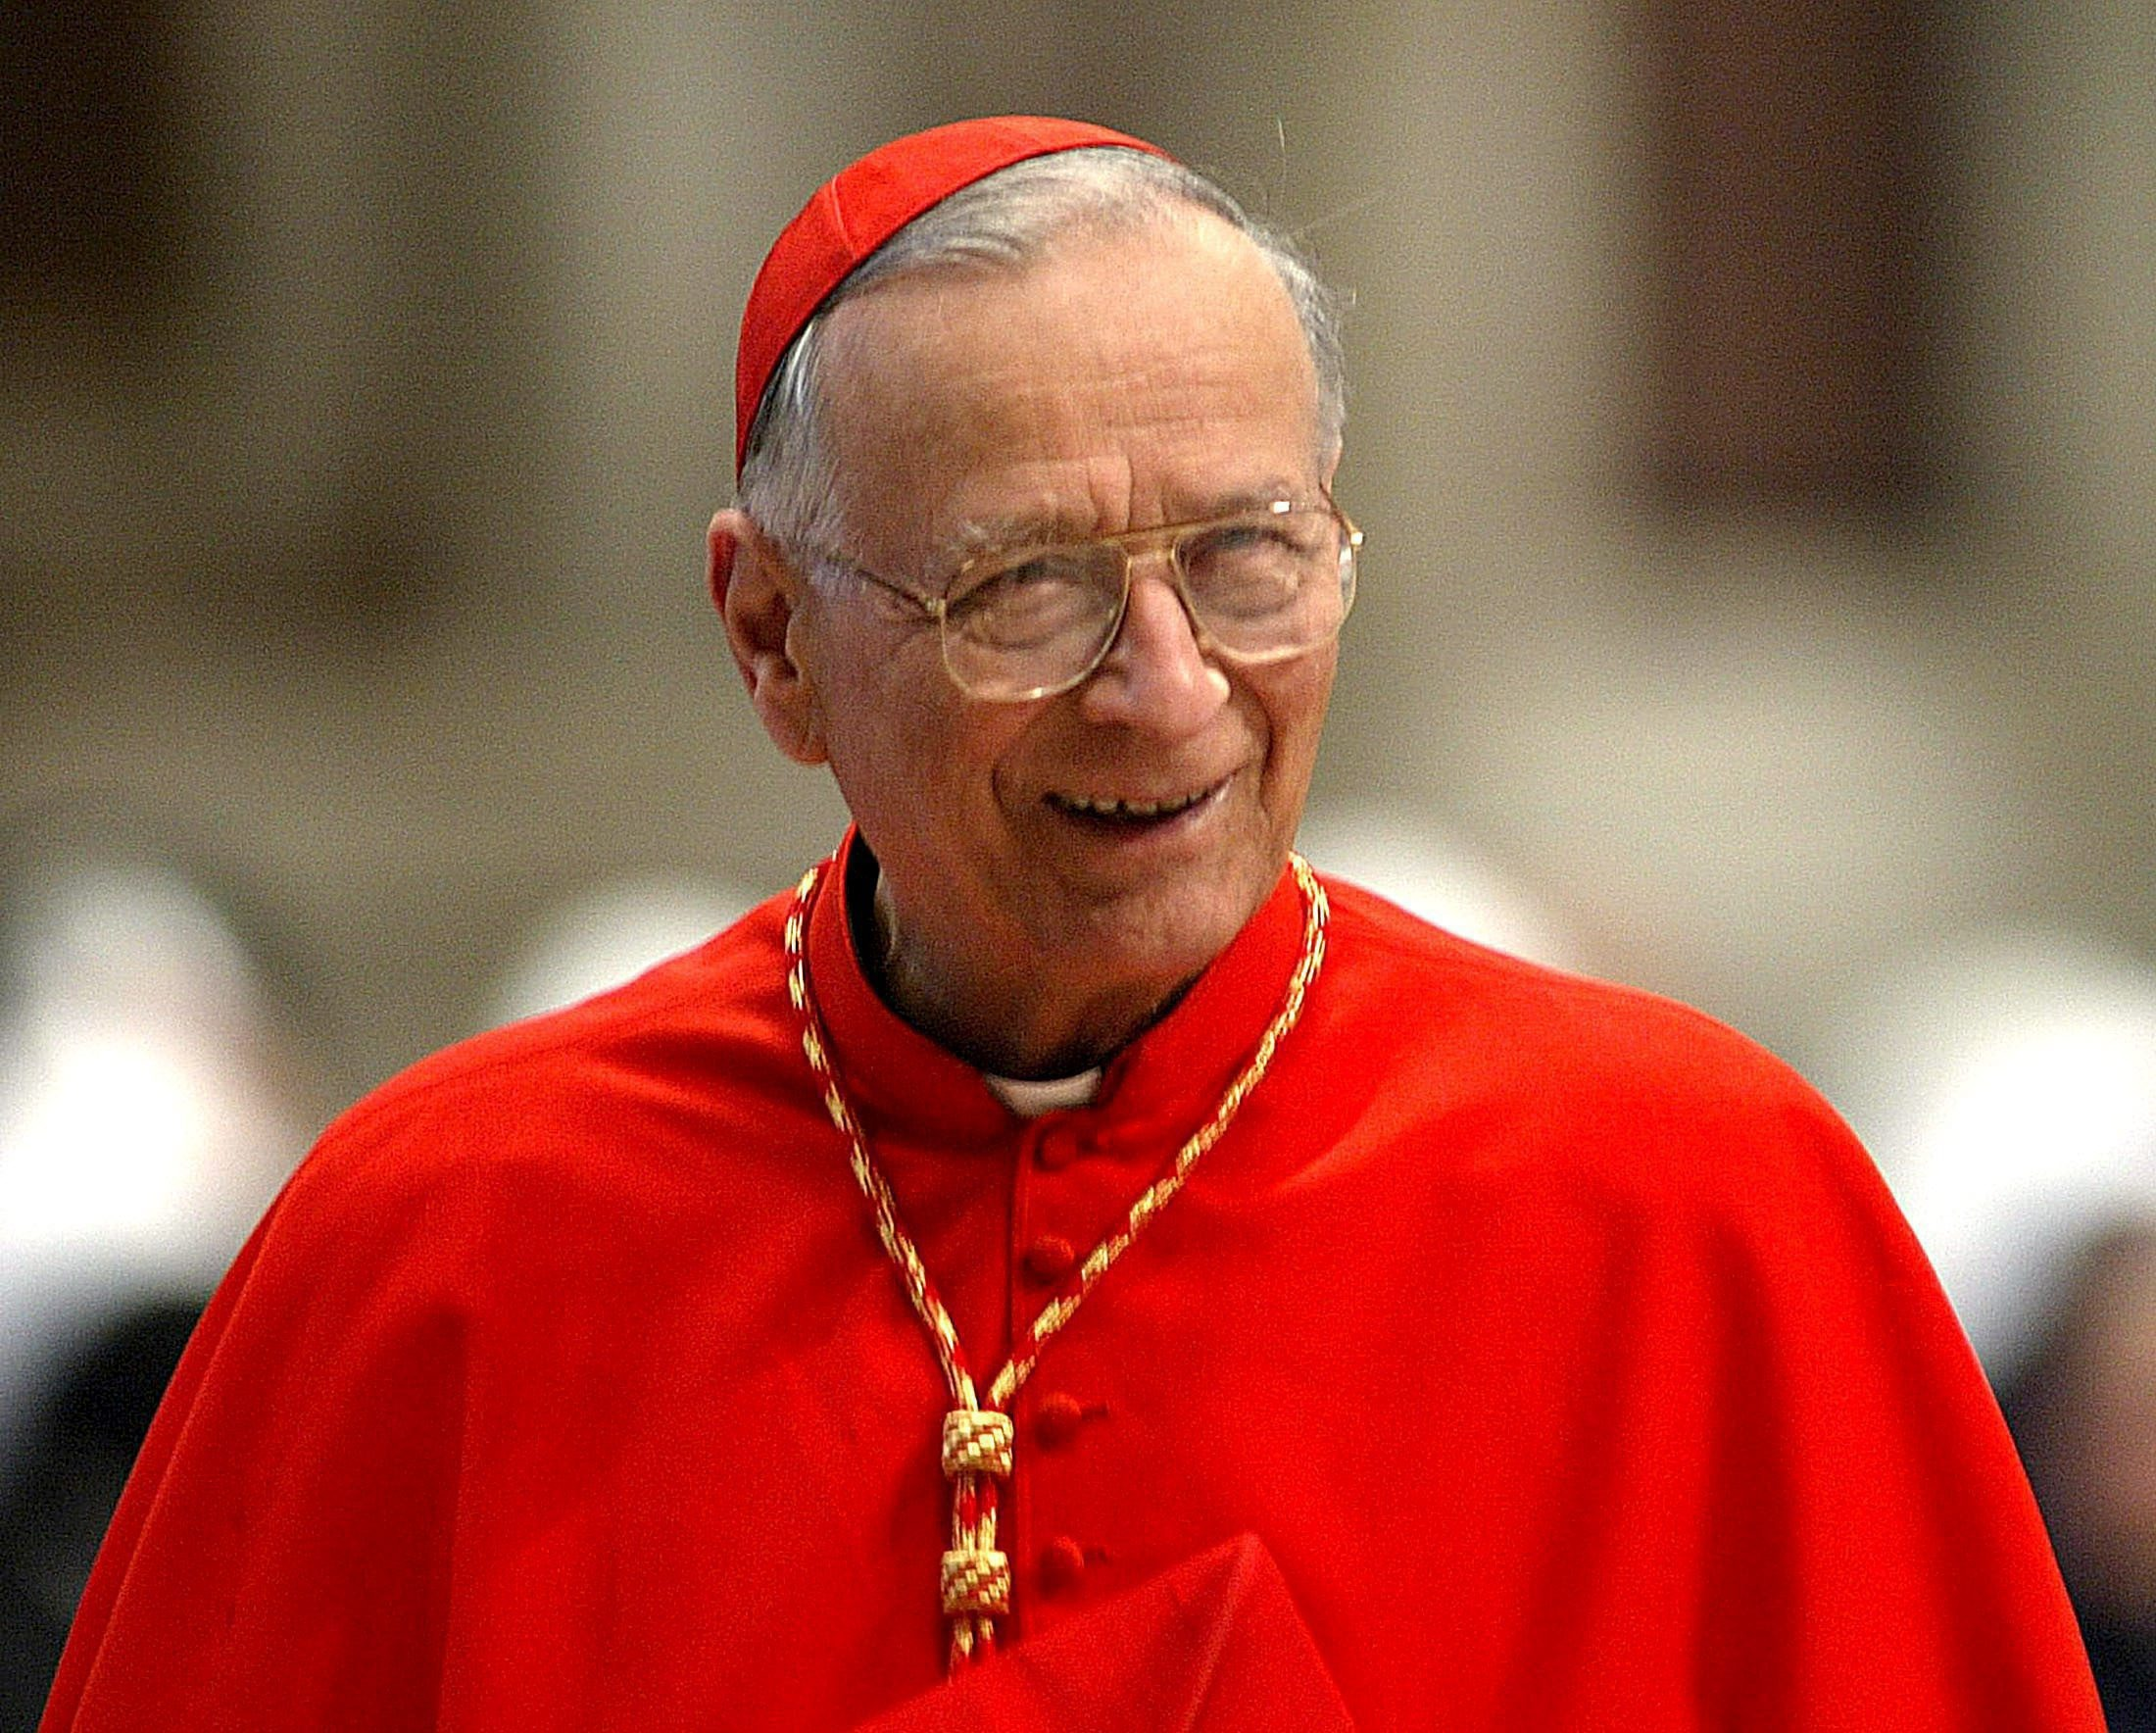 Italian Cardinal Silvano Piovanelli, the retired archbishop of Florence, died July 9 at the age of 92. He is pictured during a Mass in St. Peter's Basilica at the Vatican in this April 10, 2005, file photo. (CNS photo/Giuseppe Giglia, EPA) See OBIT-PIOVANELLI July 11, 2016.